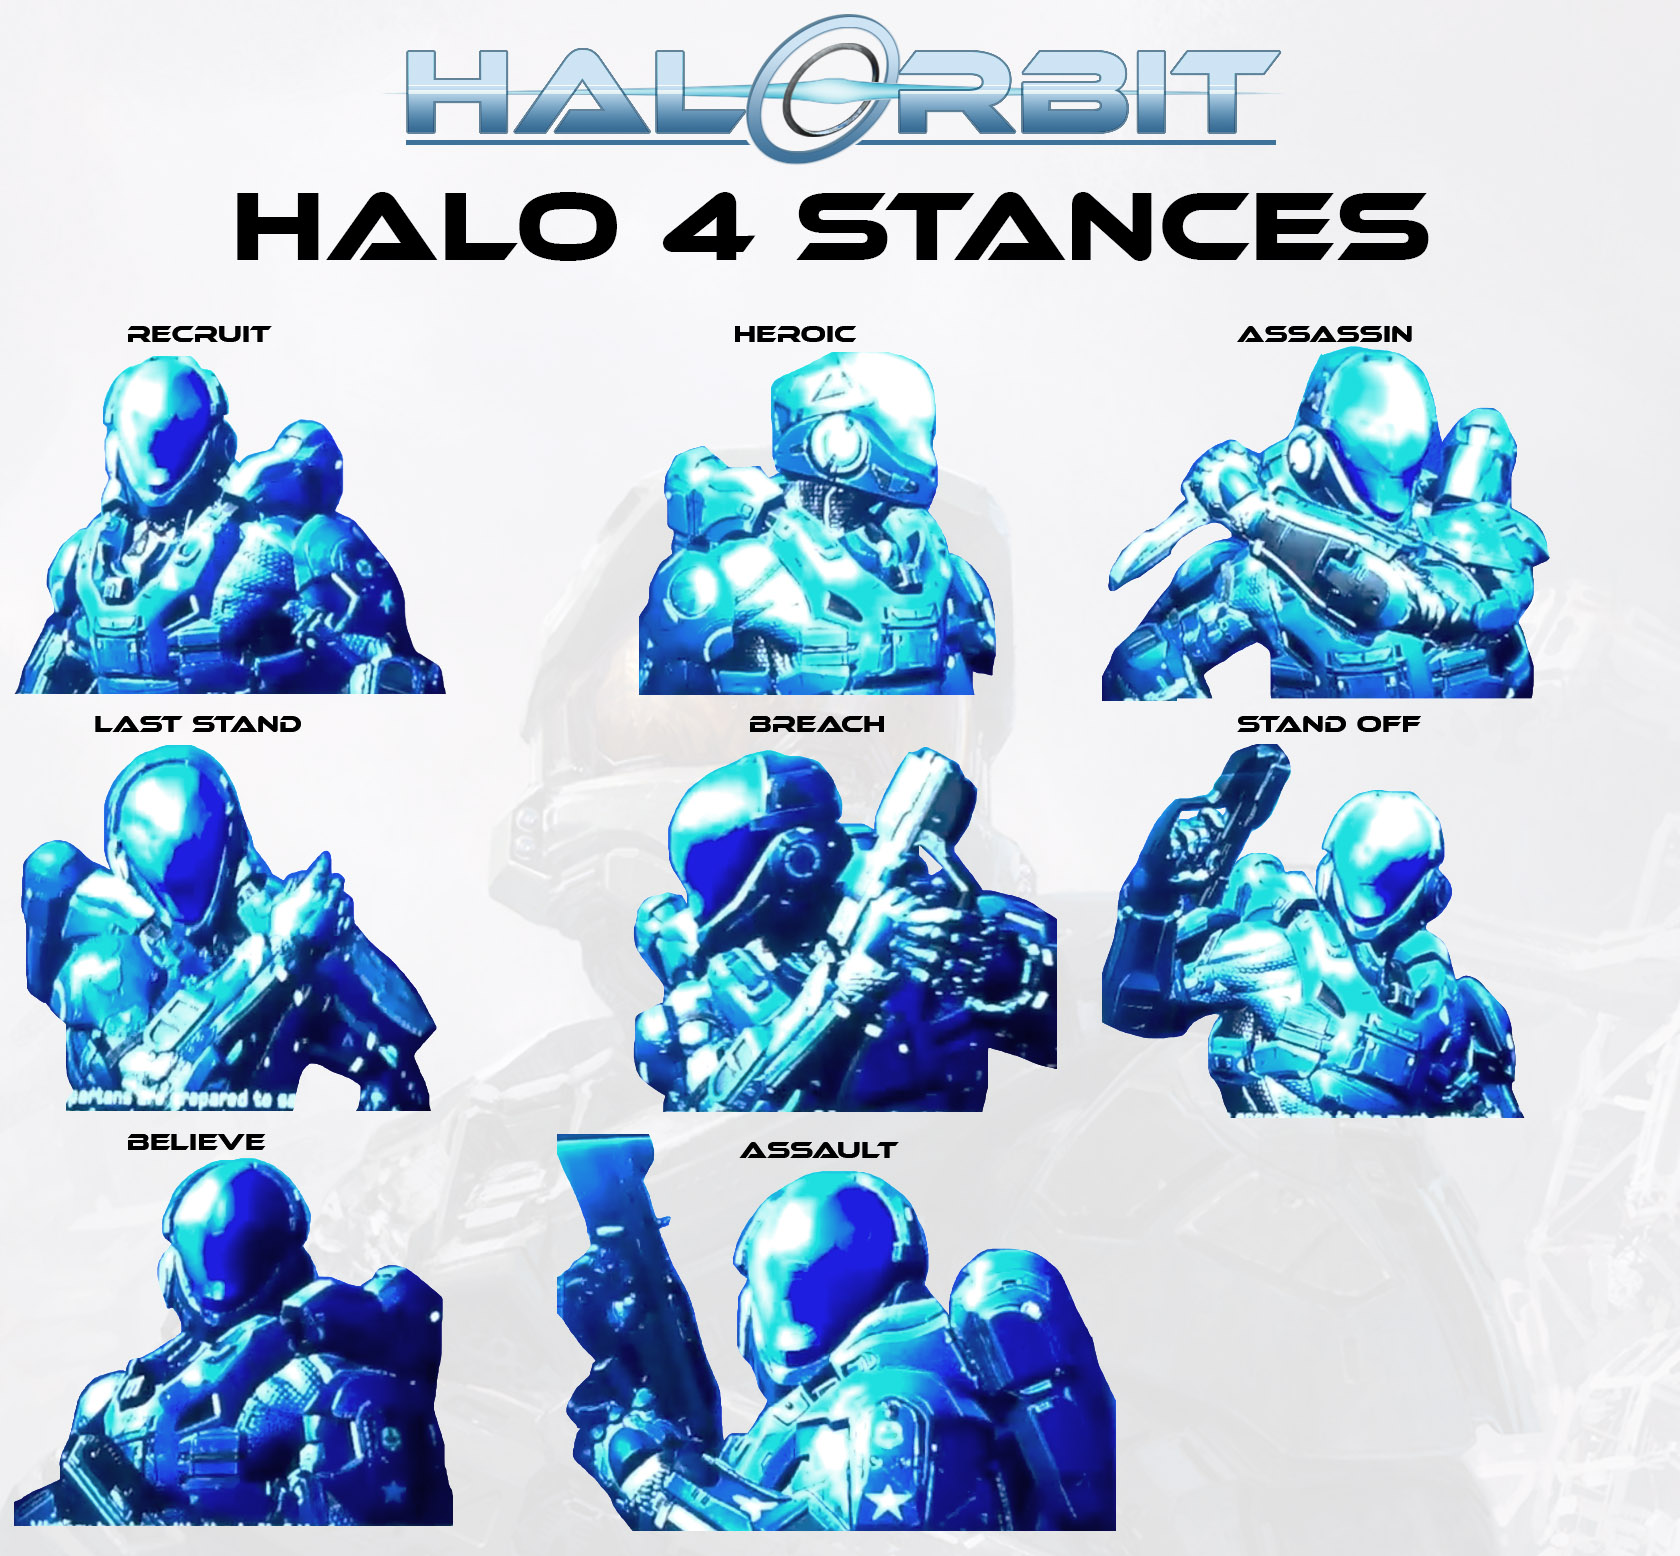 How to unlock stances in Halo 4